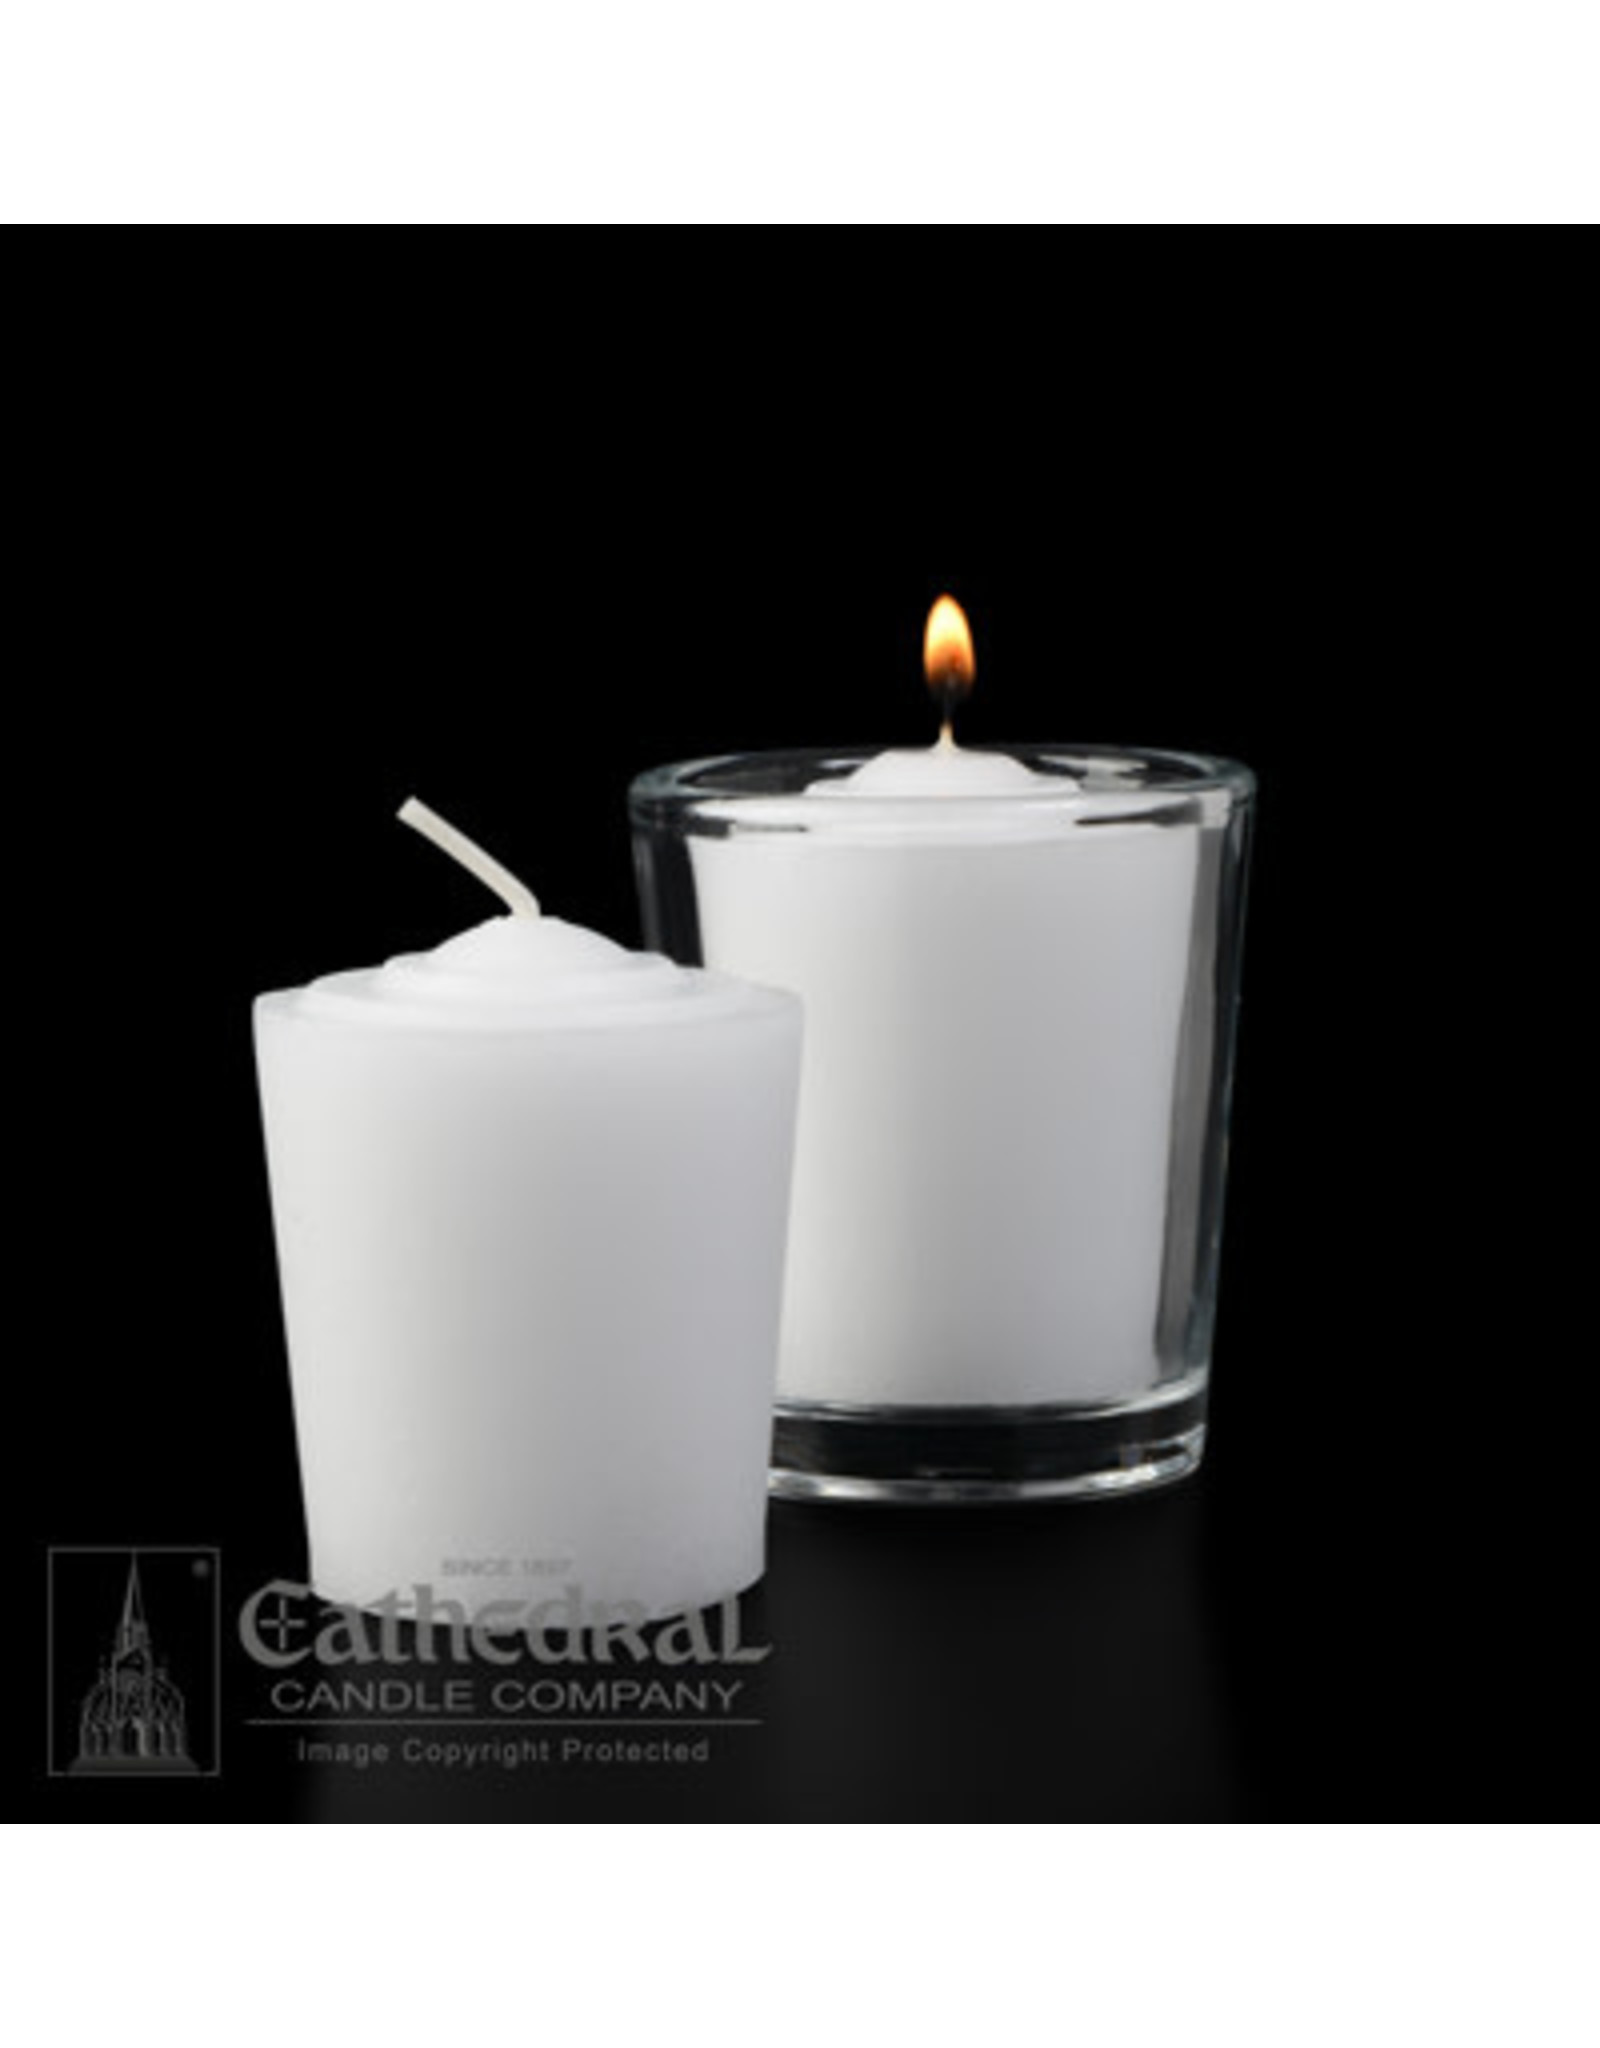 15-Hour Tapered Votive Candles (Box of 36)